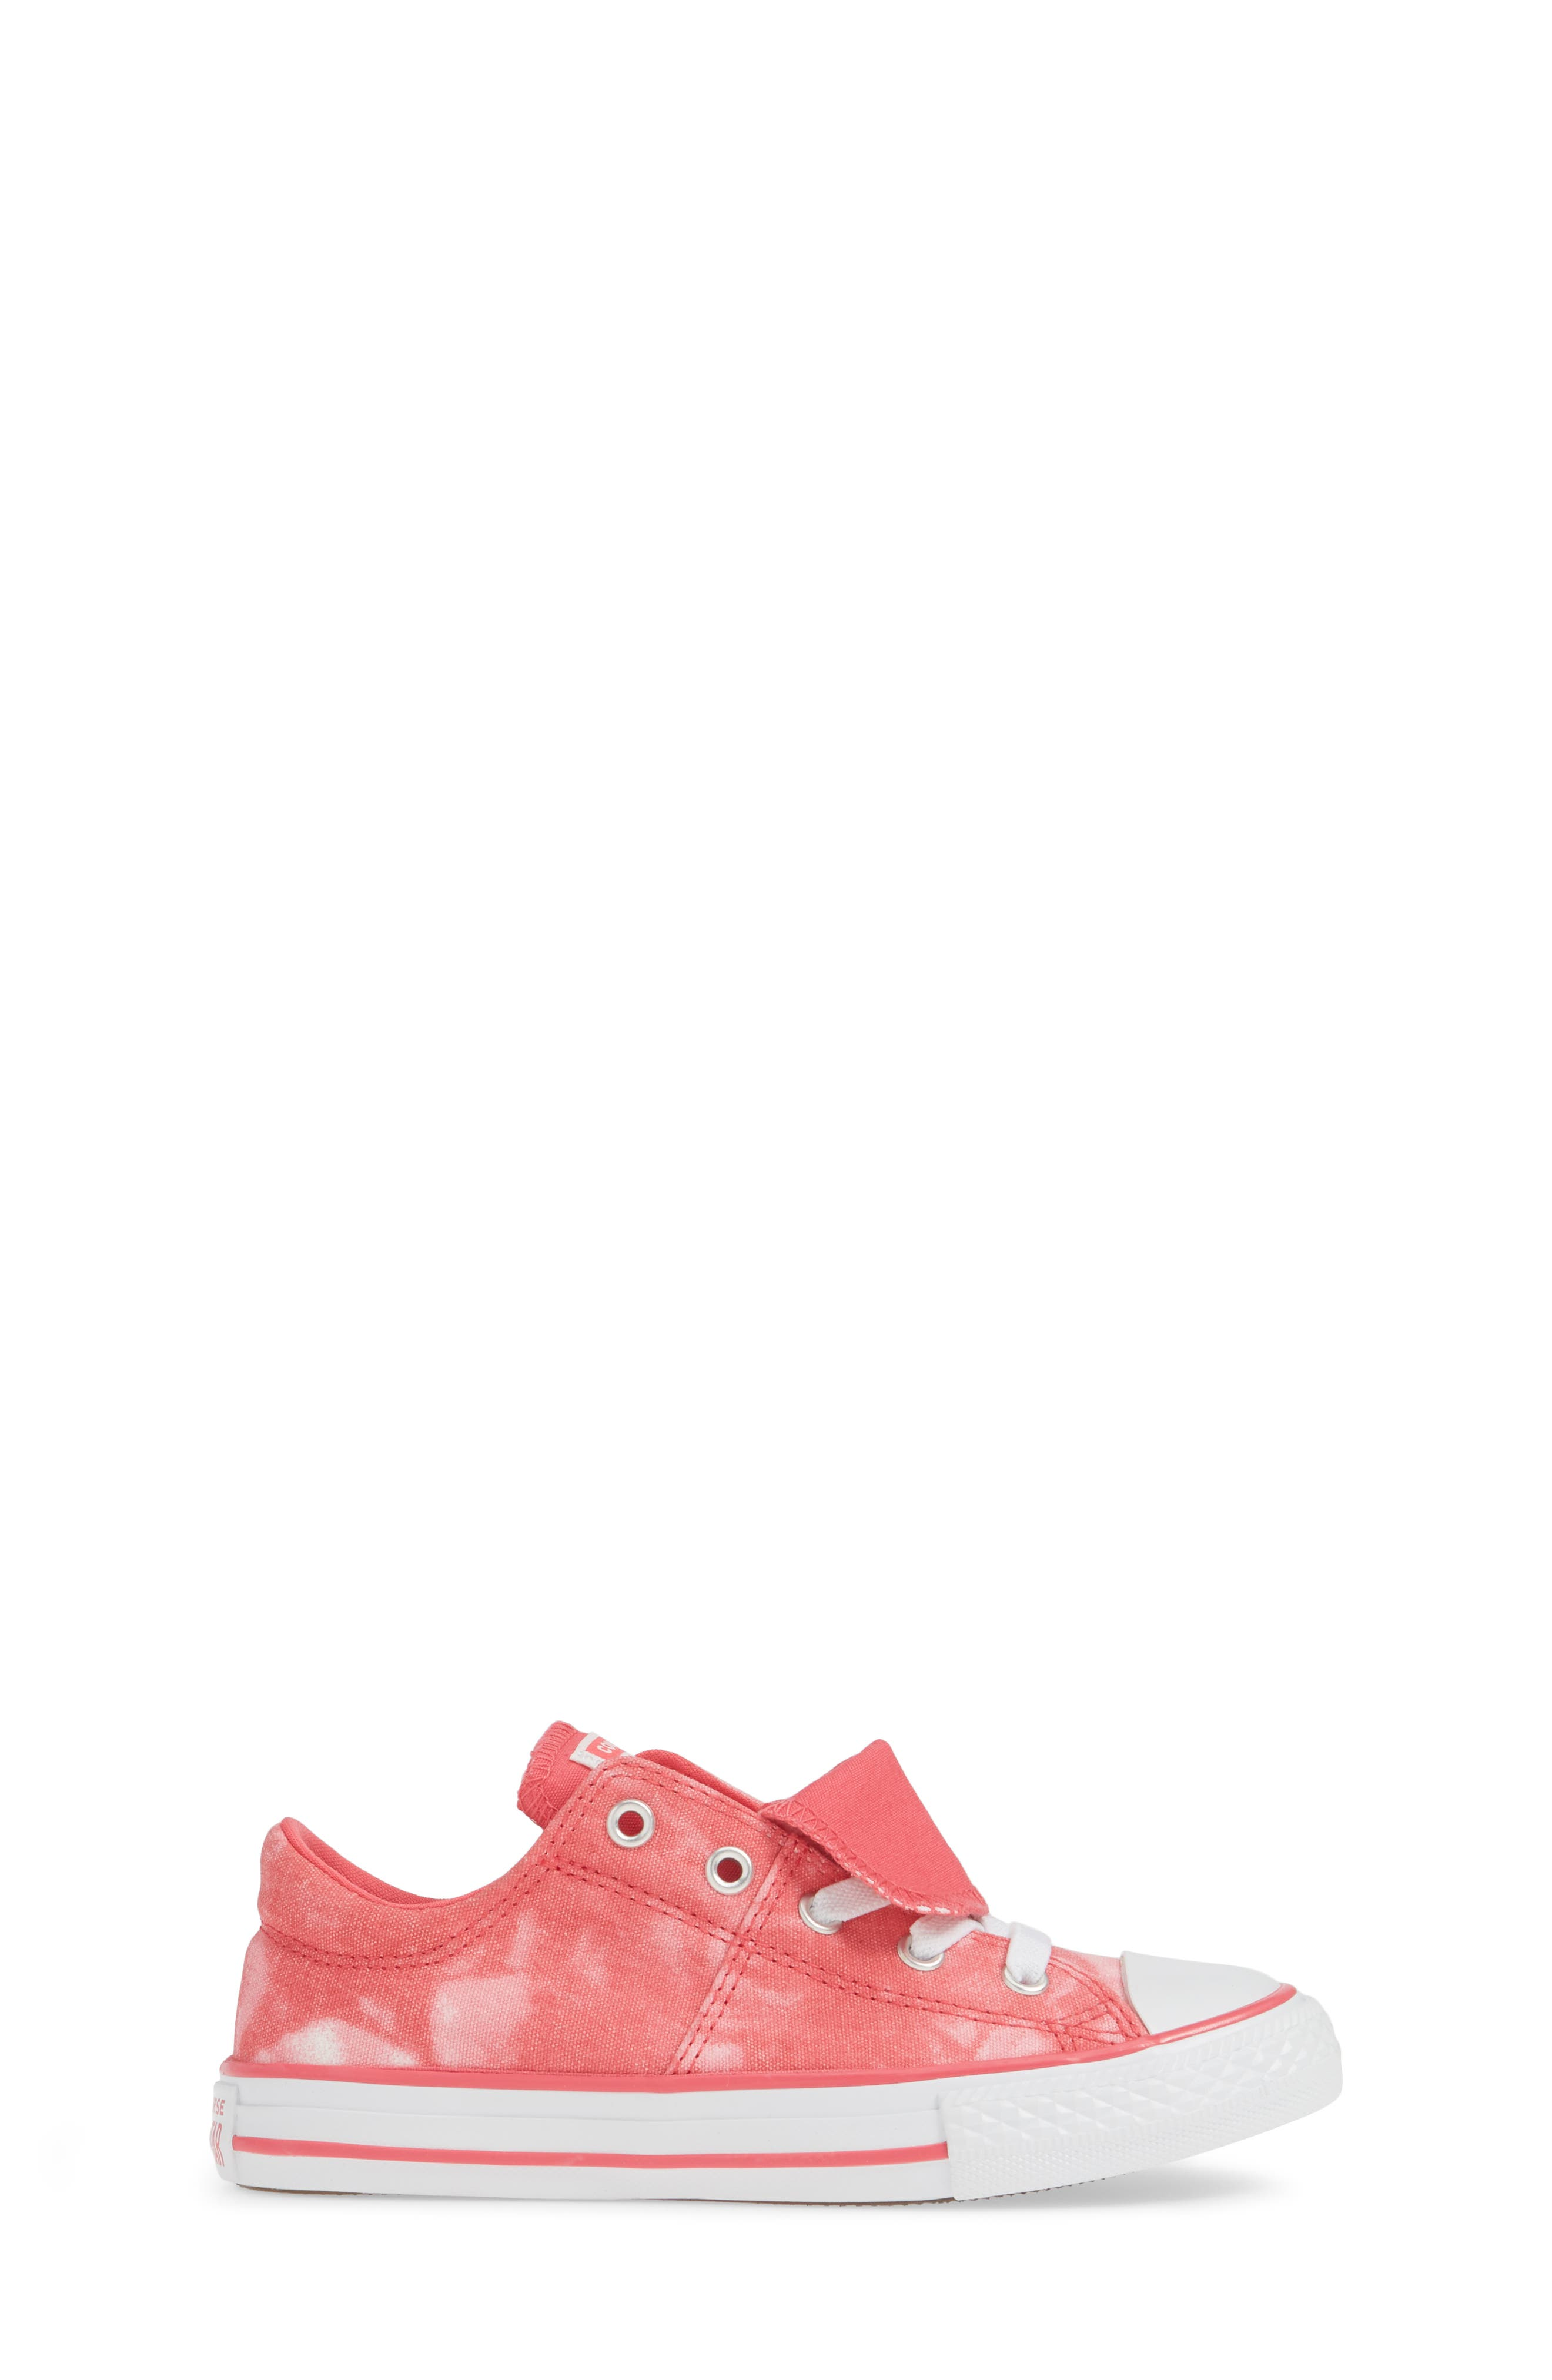 ,                             Chuck Taylor<sup>®</sup> All Star<sup>®</sup> Maddie Double Tongue Sneaker,                             Alternate thumbnail 39, color,                             662